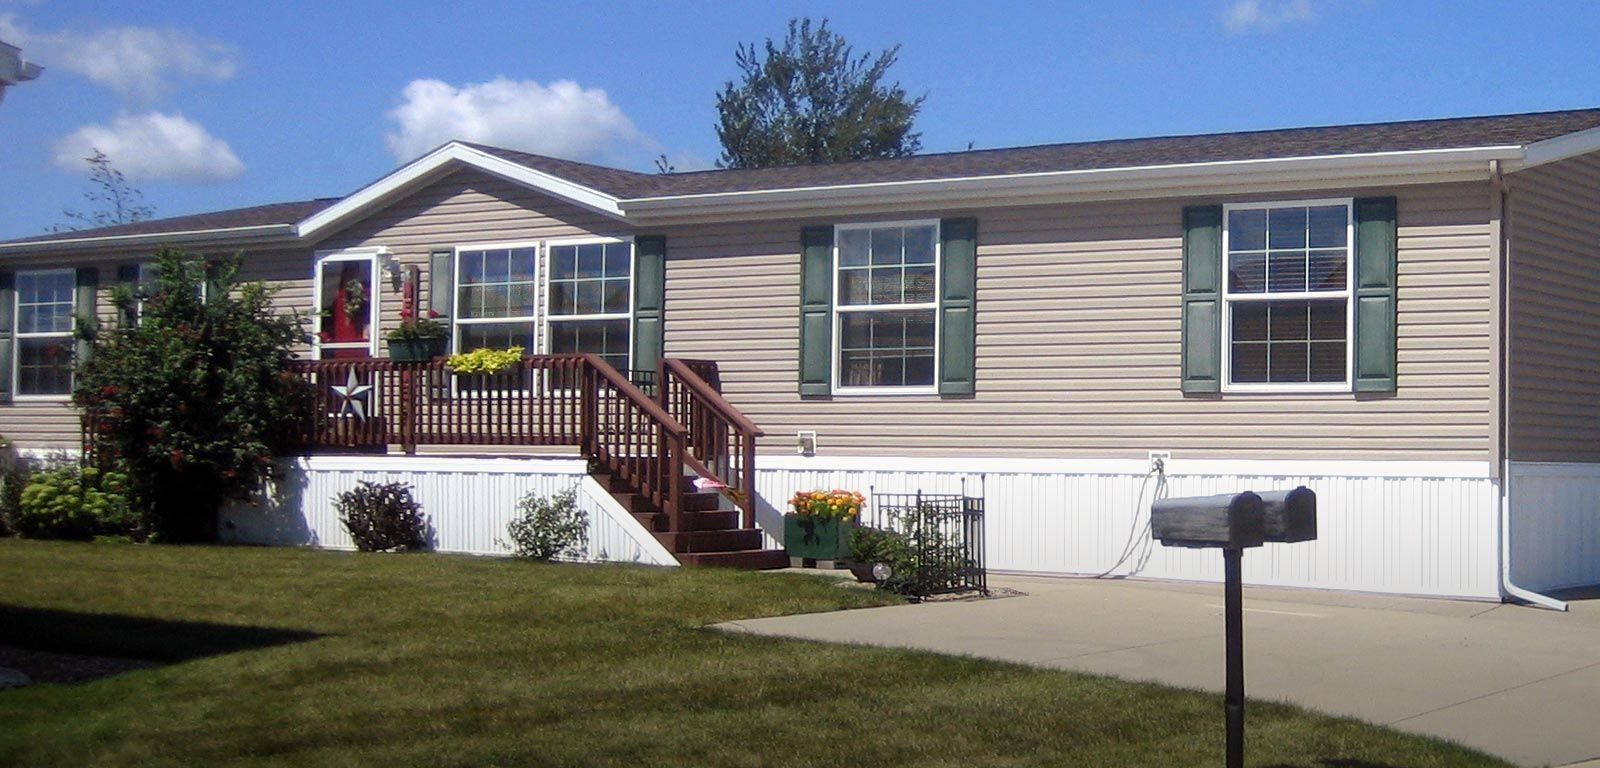 5 Tips For Selling Your Mobile Home In Los Angeles In 2020 Mobile Homes For Sale Renting A House Los Angeles Homes